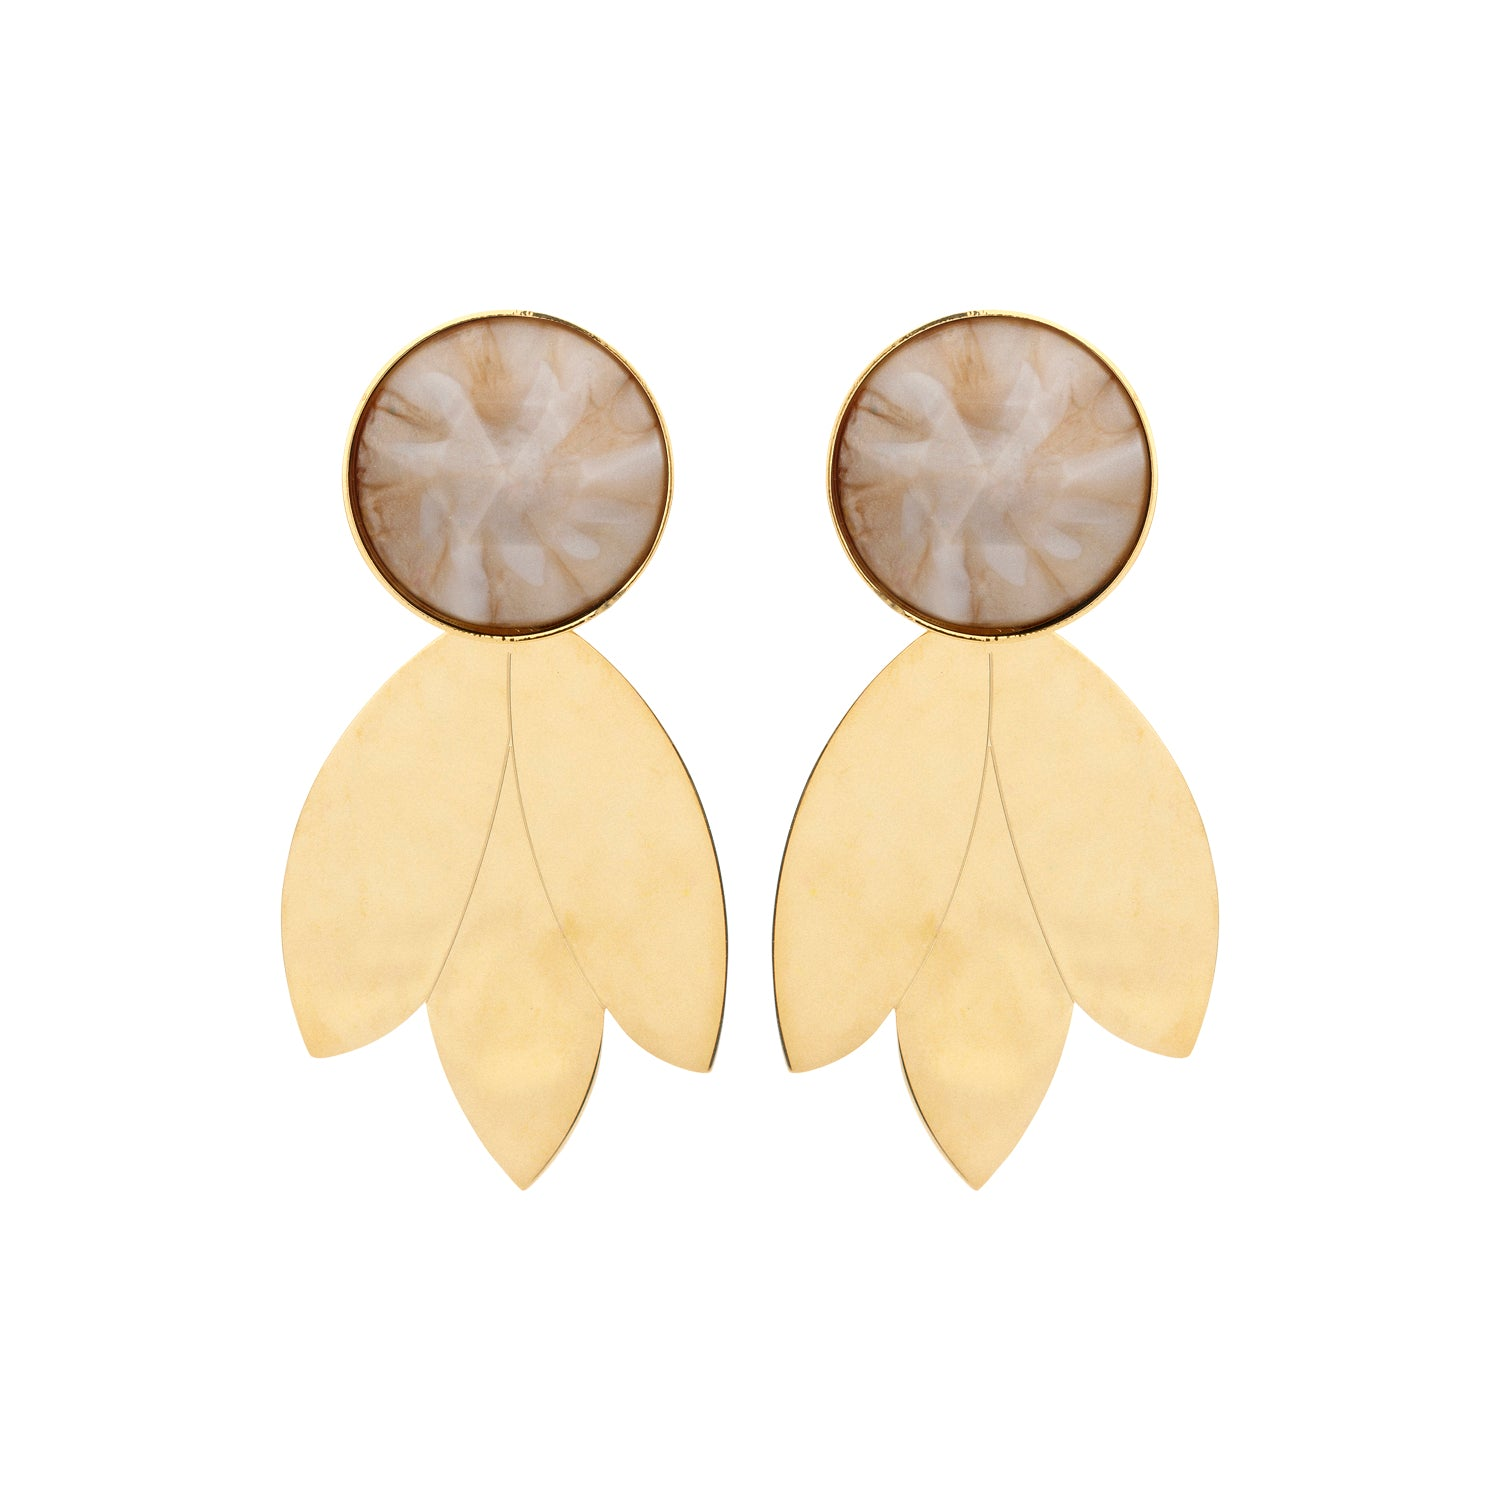 Leaf shorty nude earrings